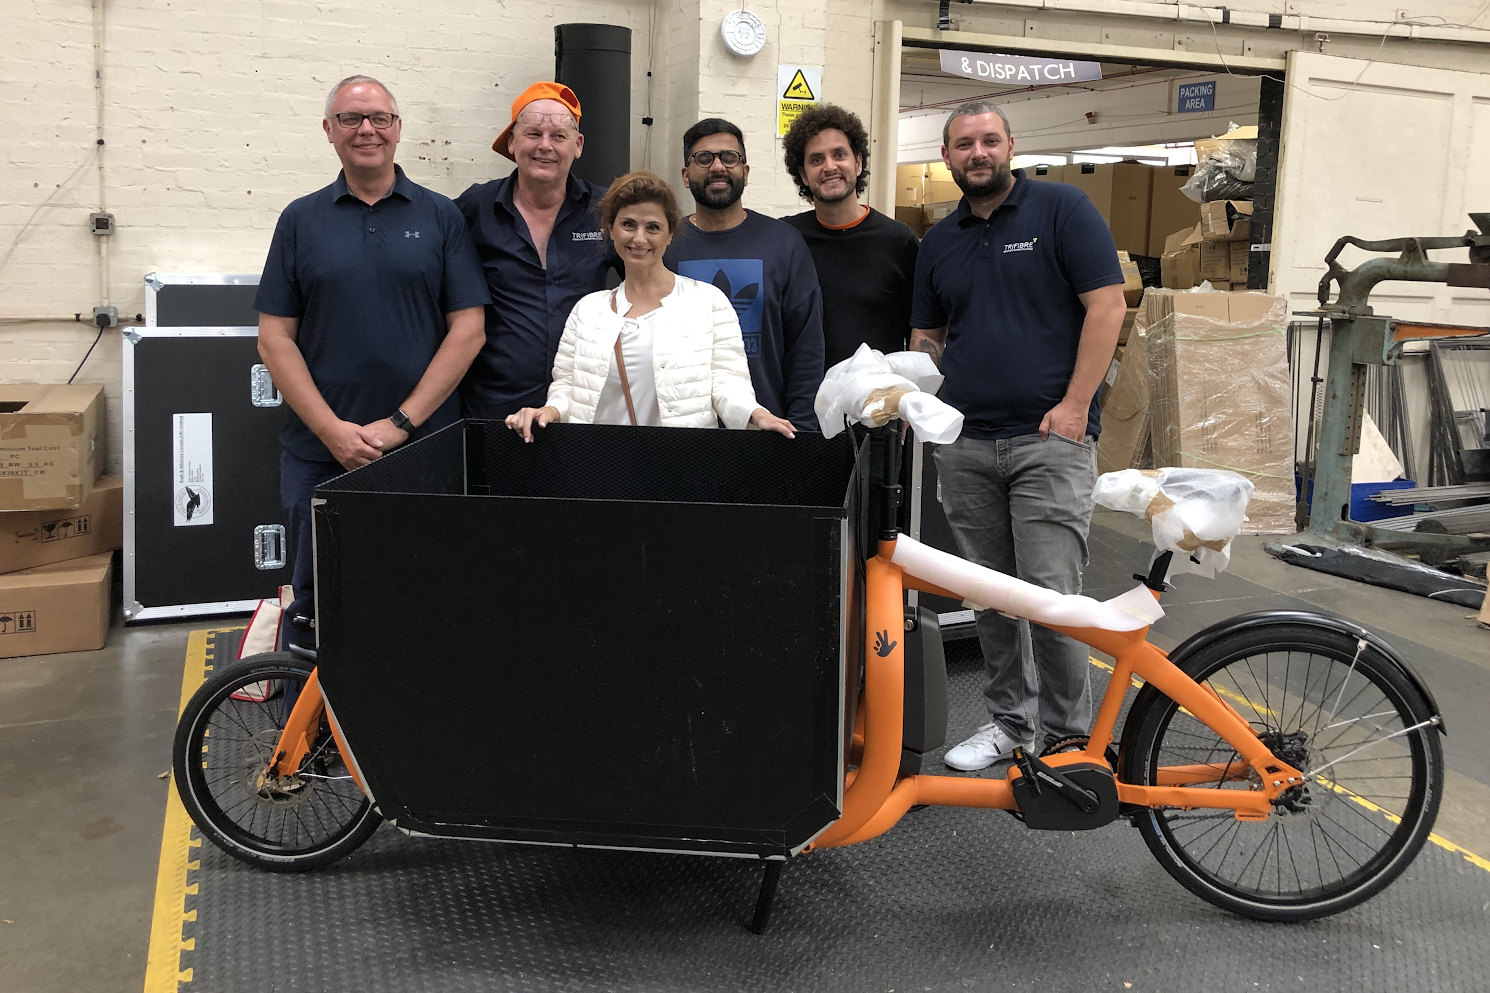 Fareh Asemi (P'11) poses with the assembly team of a prototype of the ecofleet bike. ecofleet is a new carbon neutral delivery company based in London.